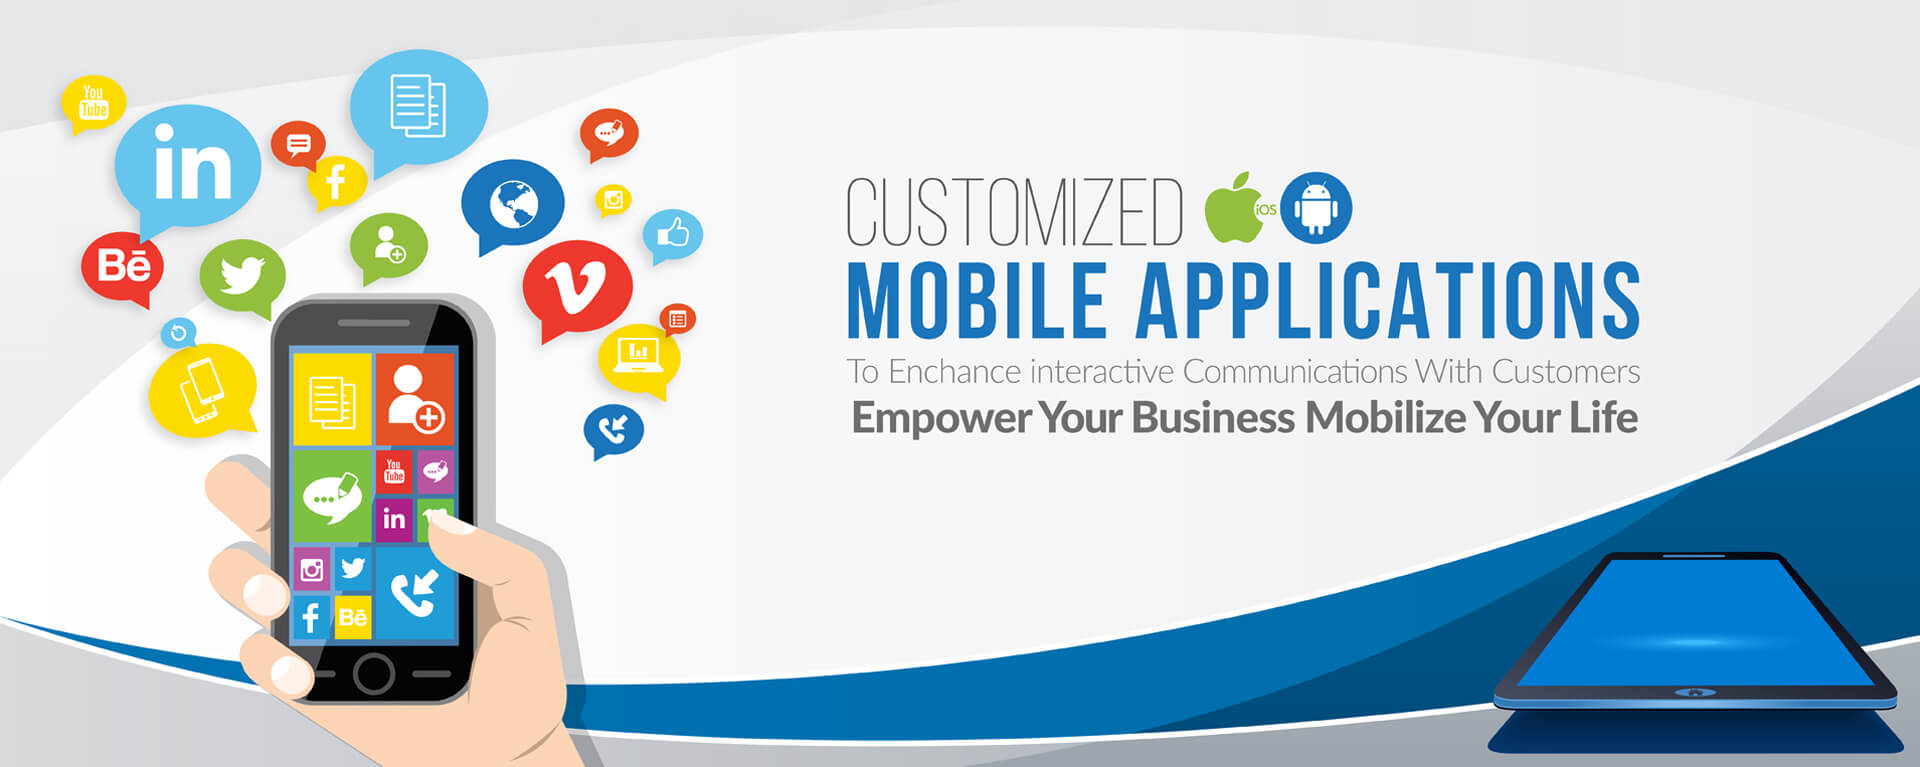 Mobile Application Banner